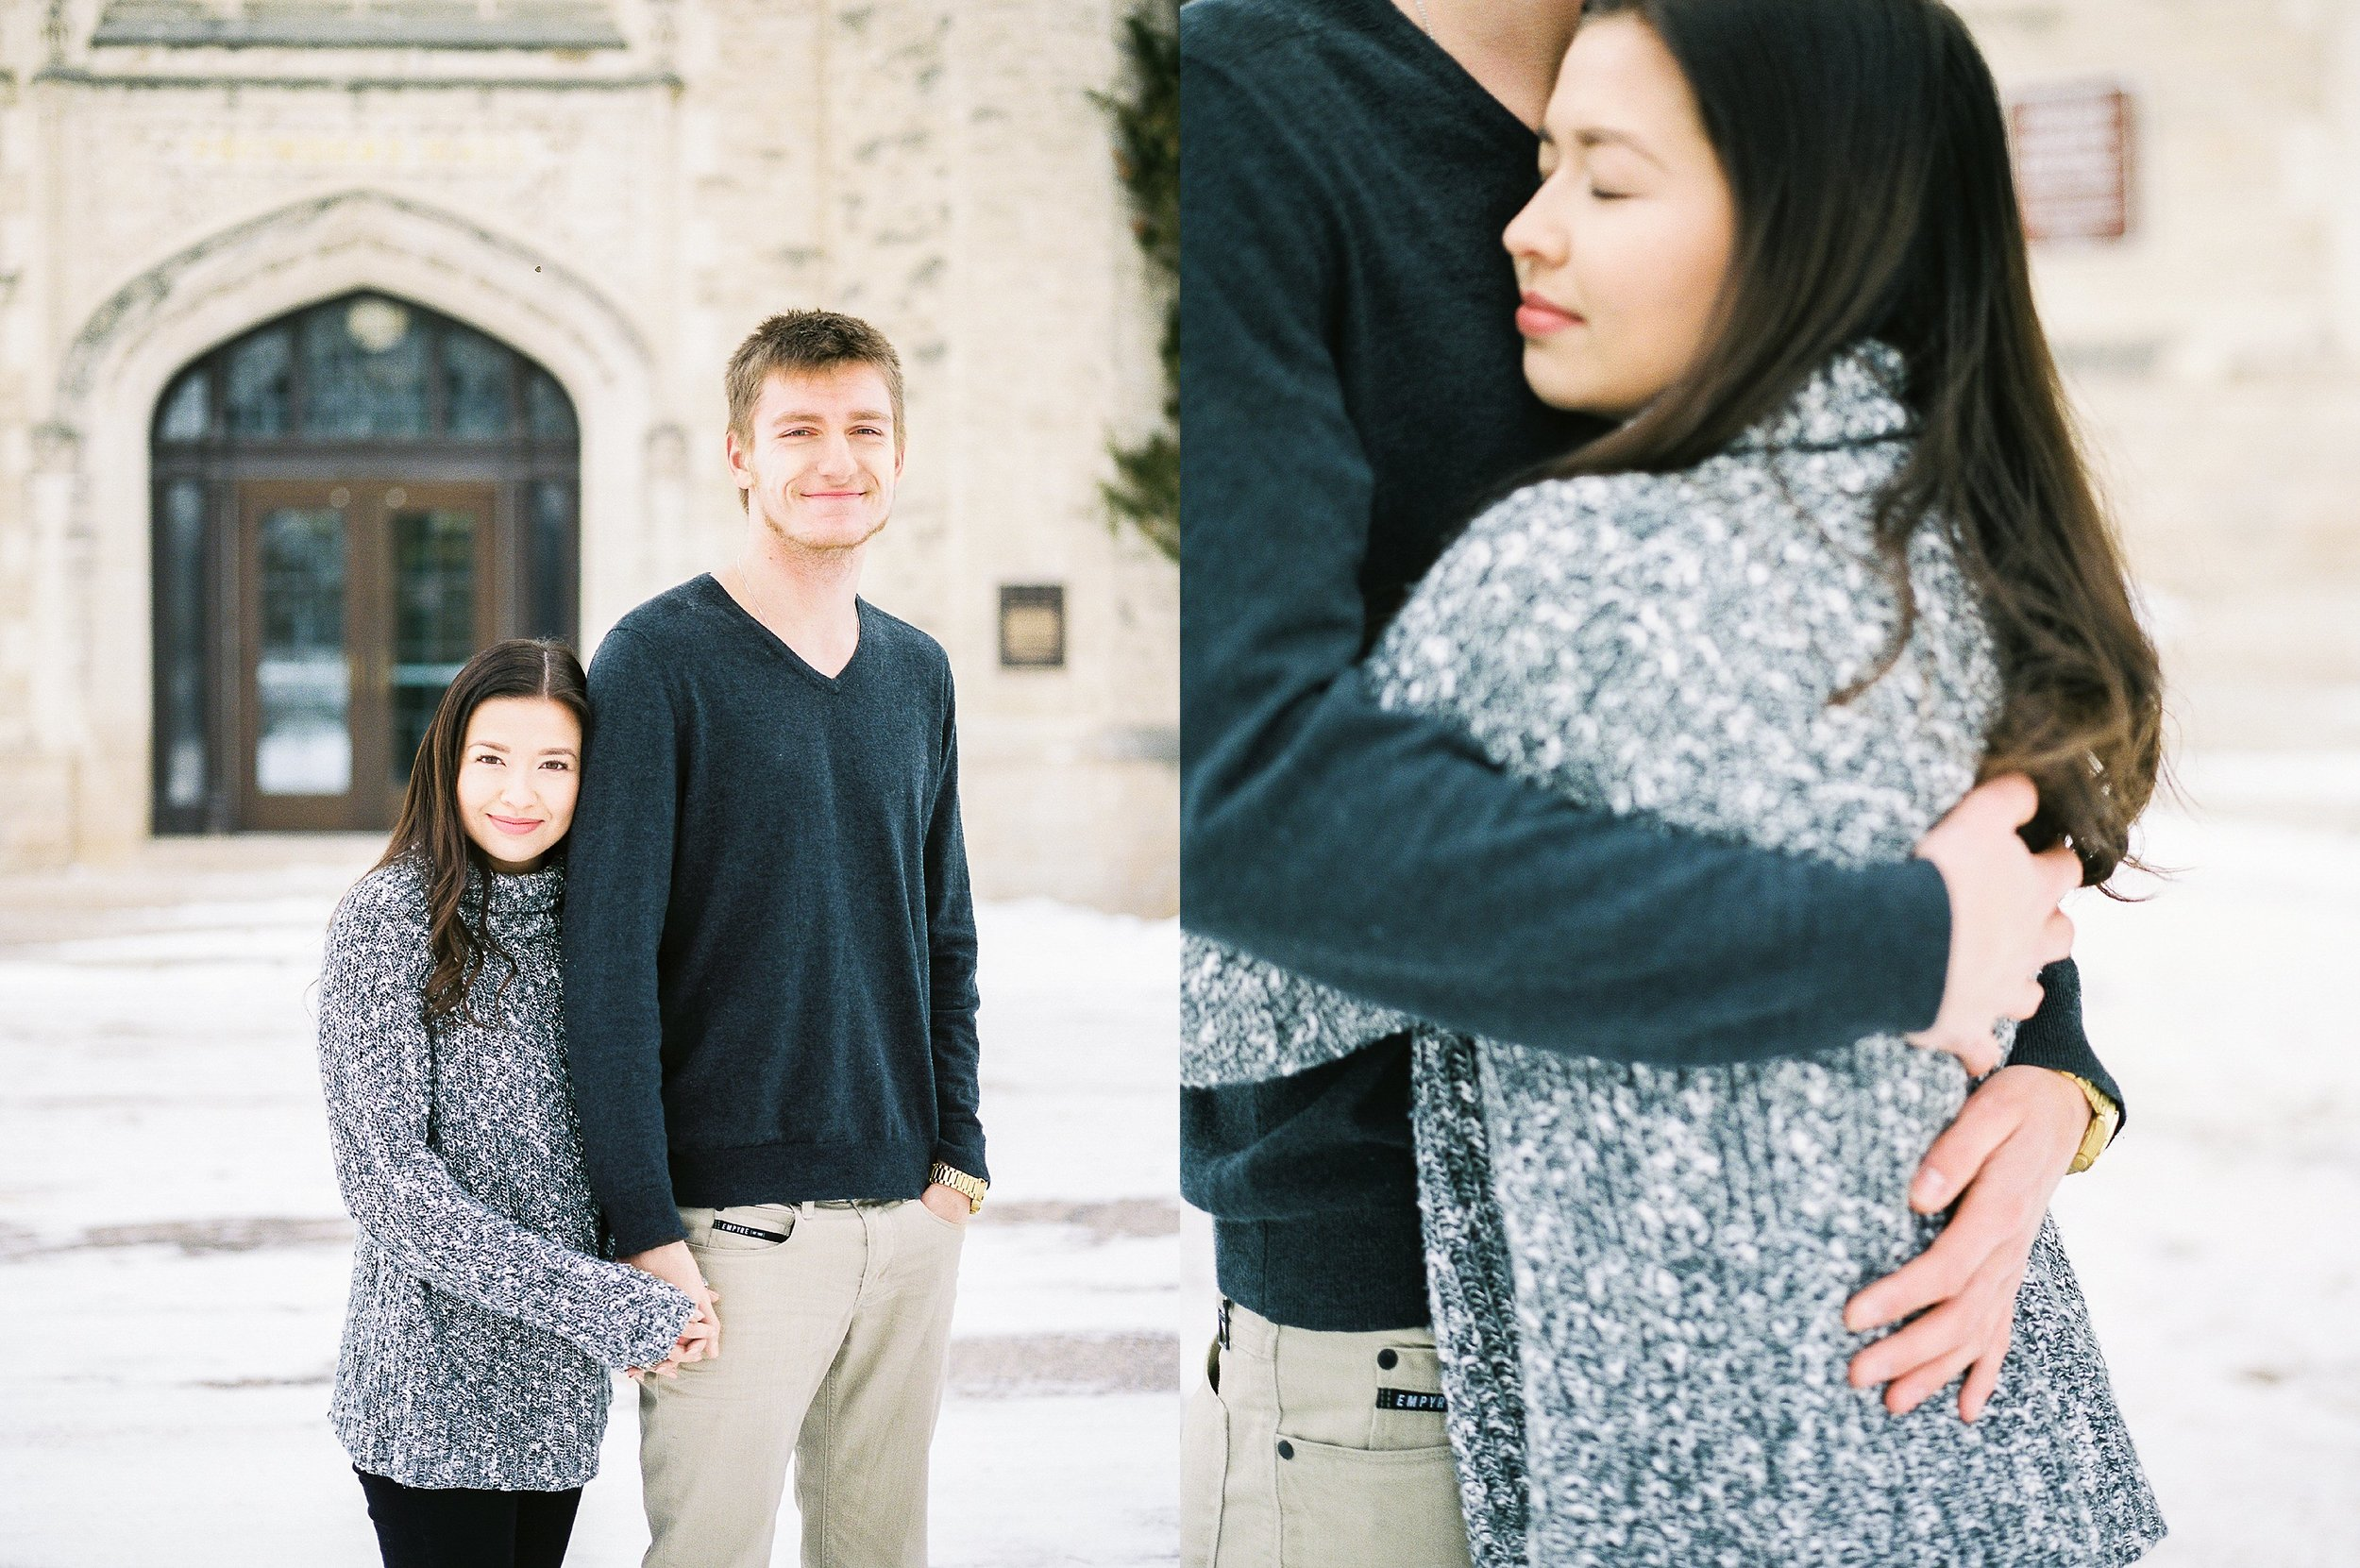 Light and airy film photographer - Winter couples photoshoot - Canadian Mennonite University - Keila Marie Photography